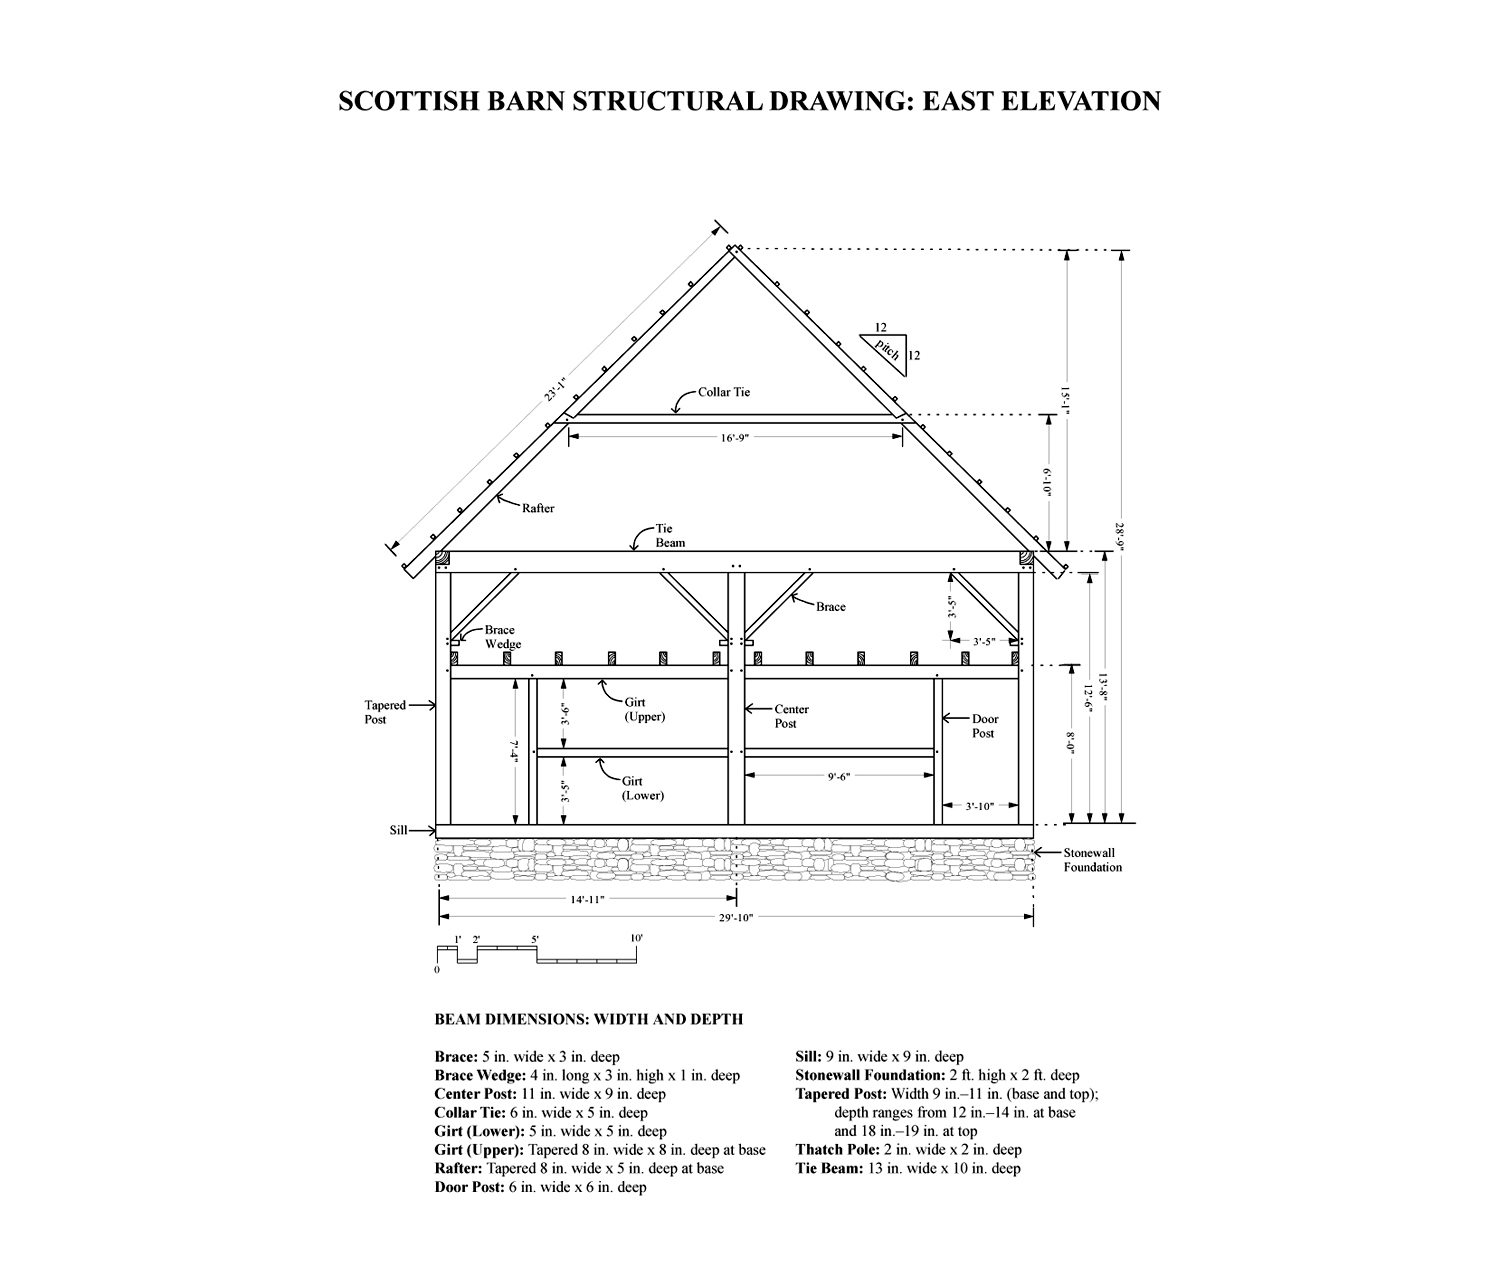 Scottish Barn East Elevation